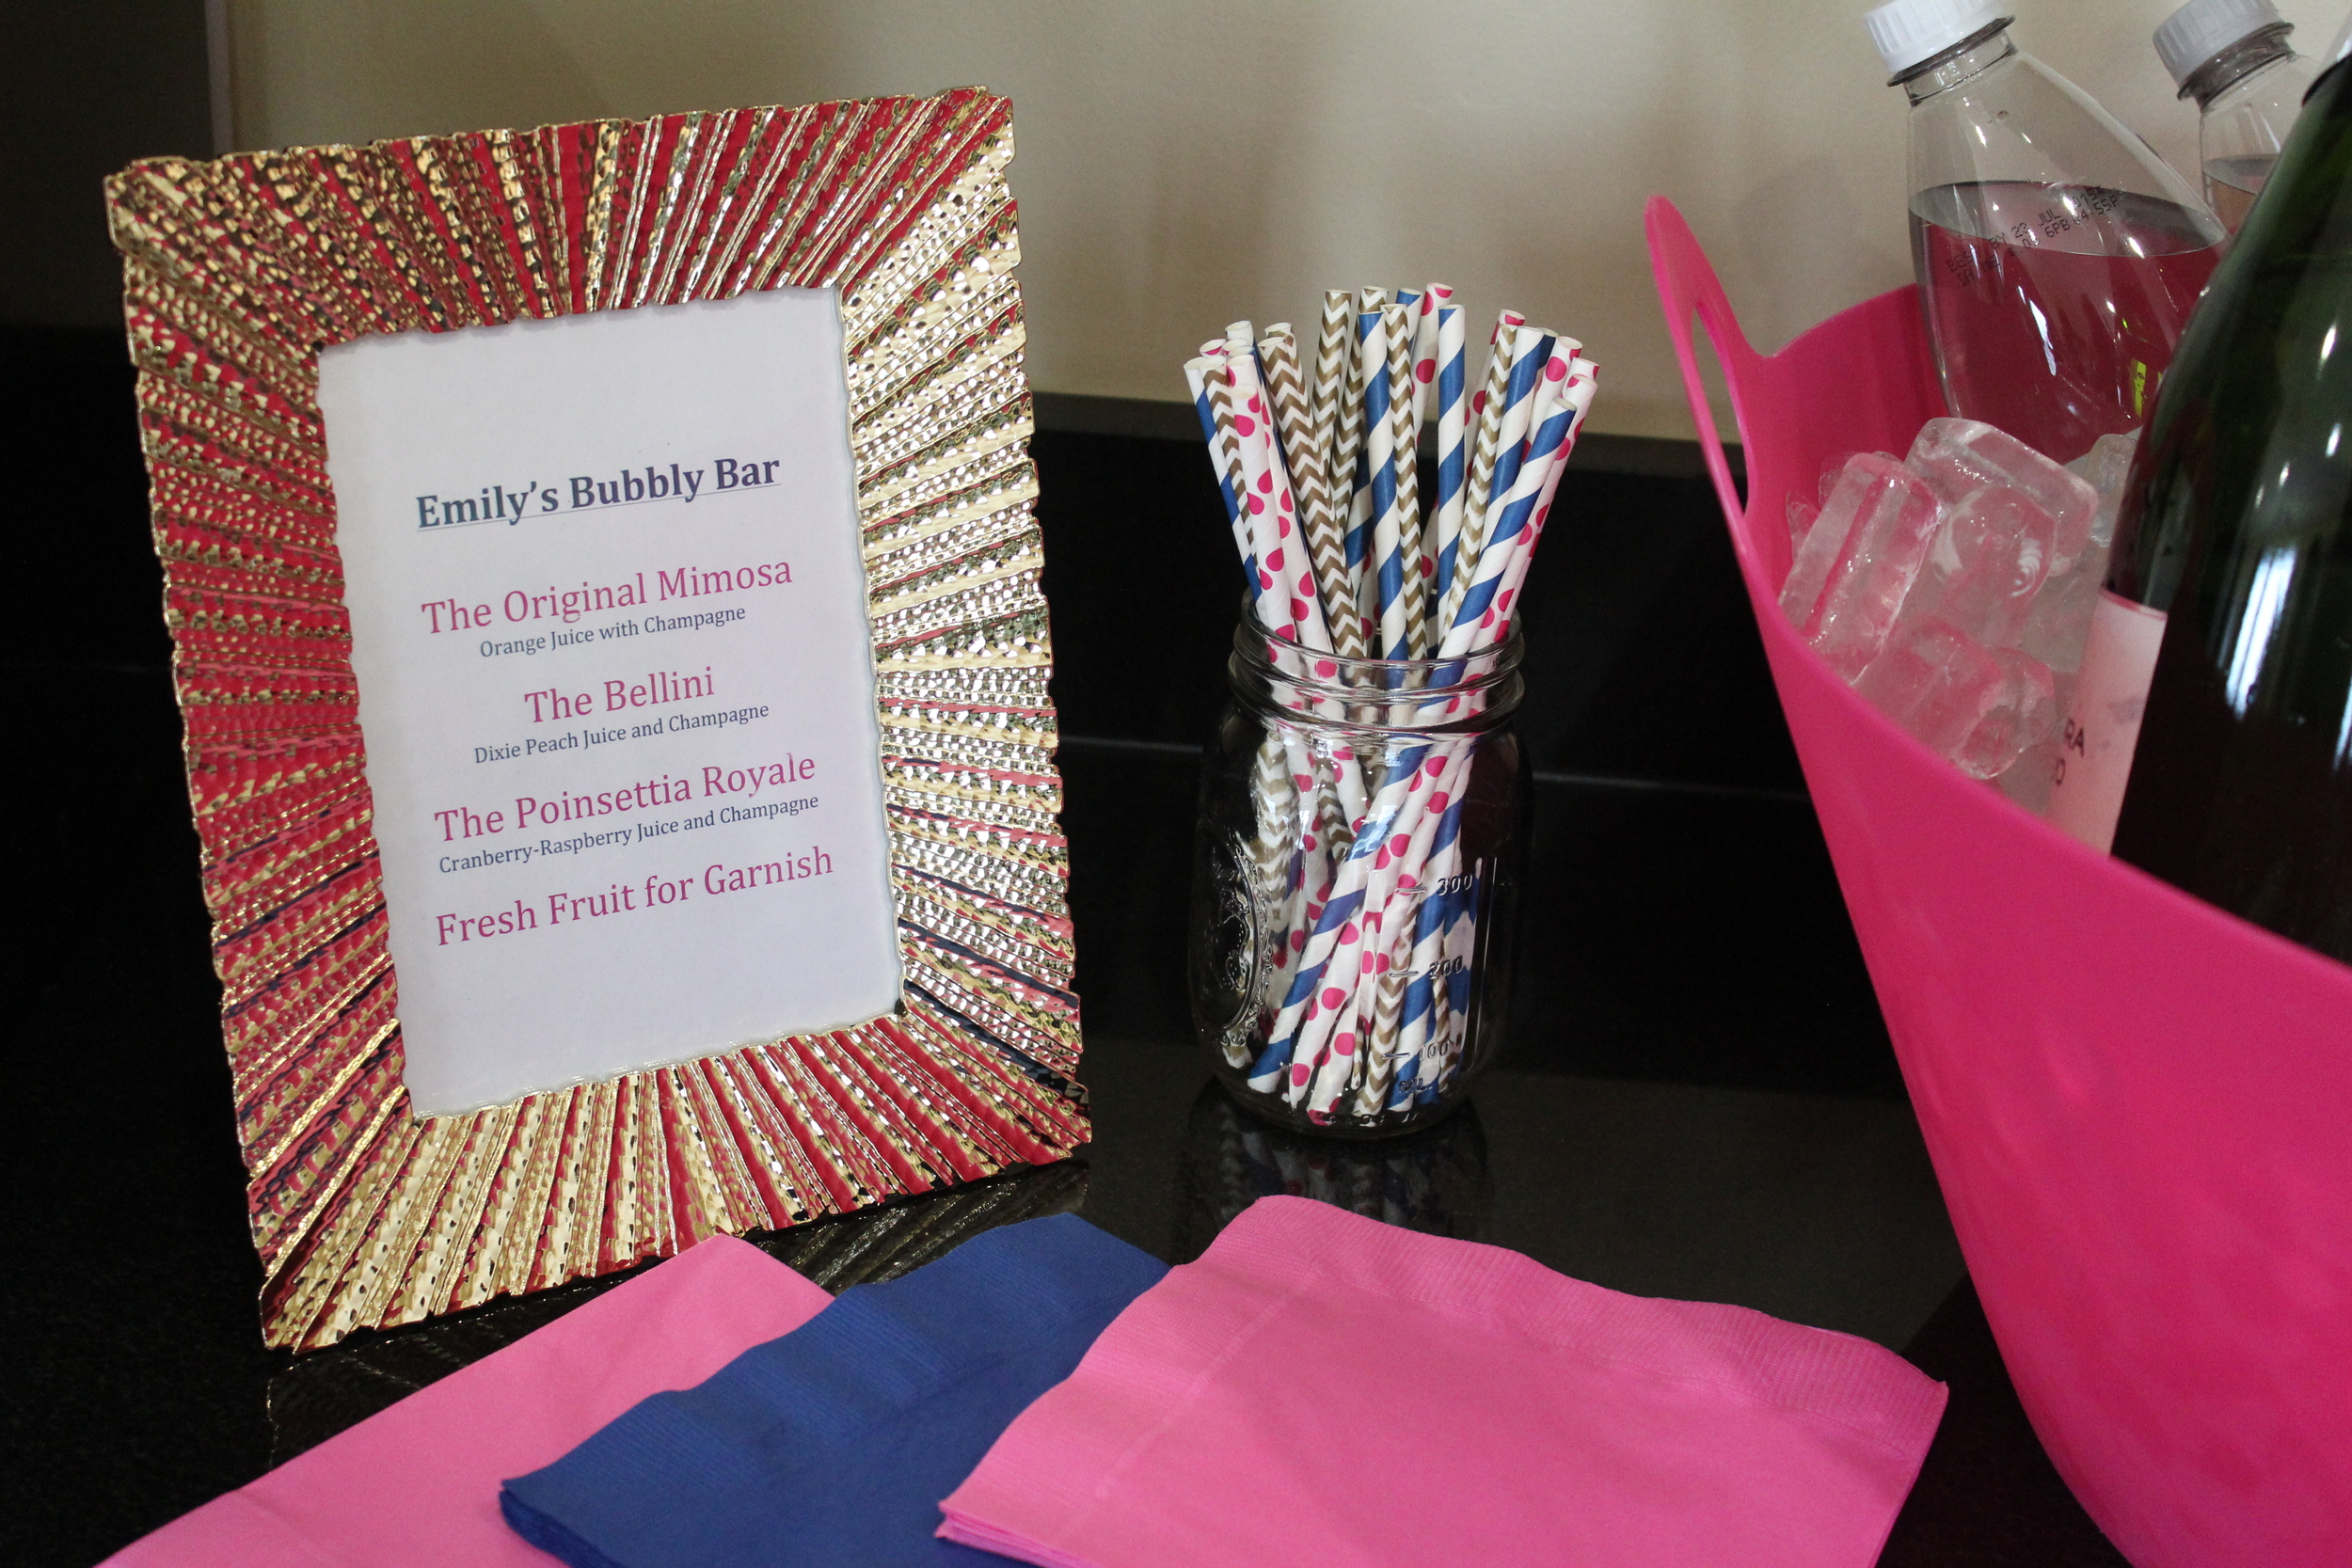 The Bubbly Bar had all the perfect fixins to make an awesome Saturday morning drink!